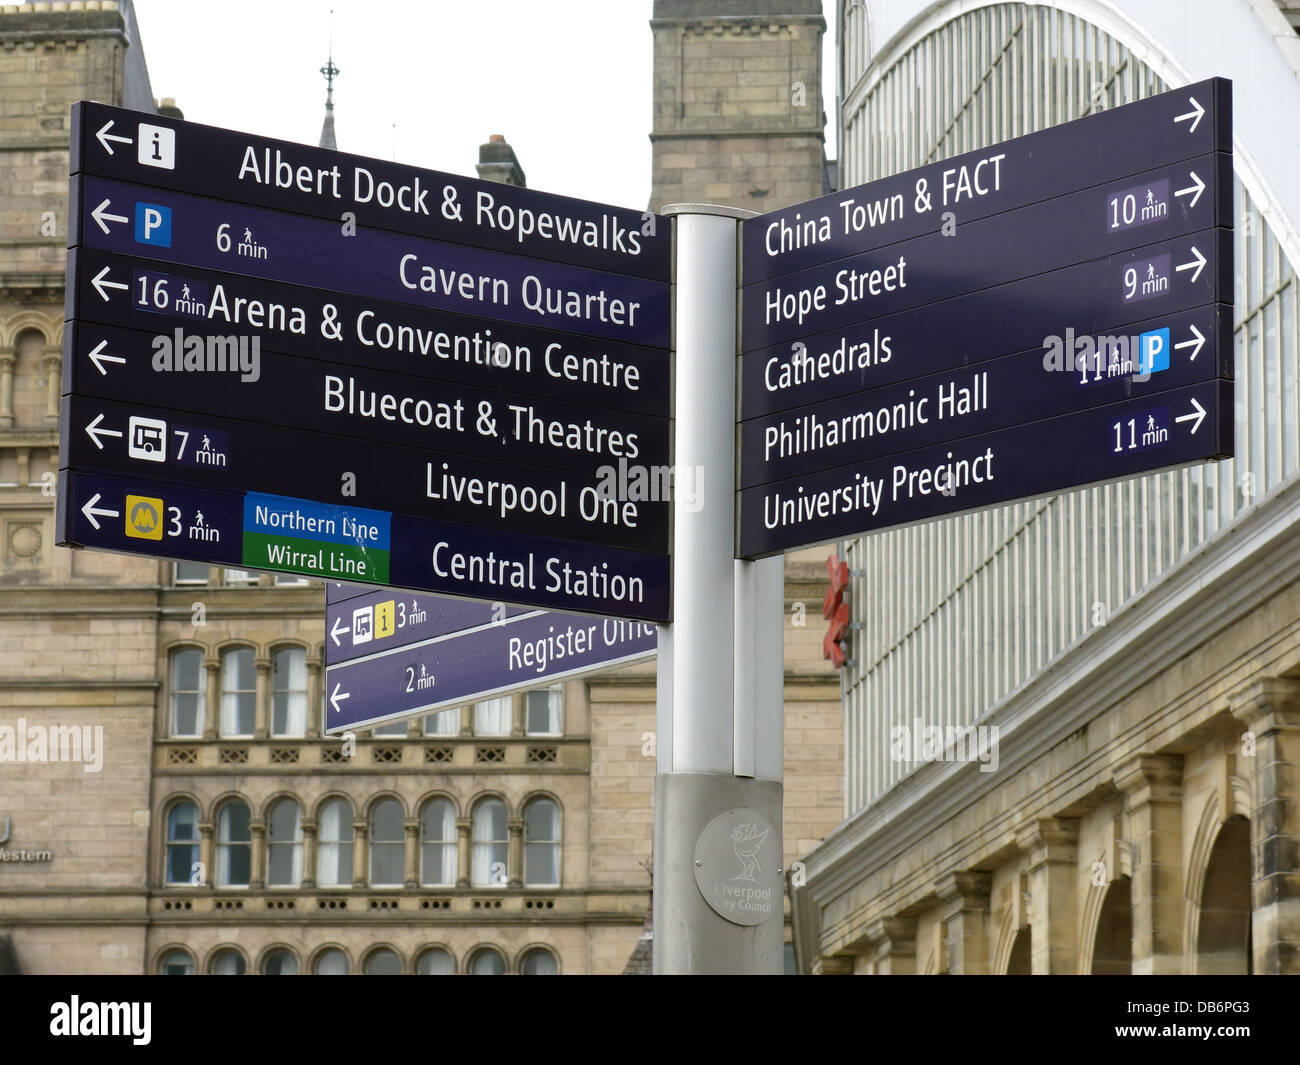 GoTonySmith,@HotpixUK,Tony,Smith,UK,GB,Great,Britain,United,Kingdom,English,British,England,problem,with,problem with,issue with,Buy Pictures of,Buy Images Of,Images of,Stock Images,Tony Smith,United Kingdom,Great Britain,British Isles,Lime St,Lime Street,Sign showing Liverpool,city centre,tourism,Beatles,city,Merseyside,sign,showing,Liverpool sign,Liverpool signpost,street,street sign